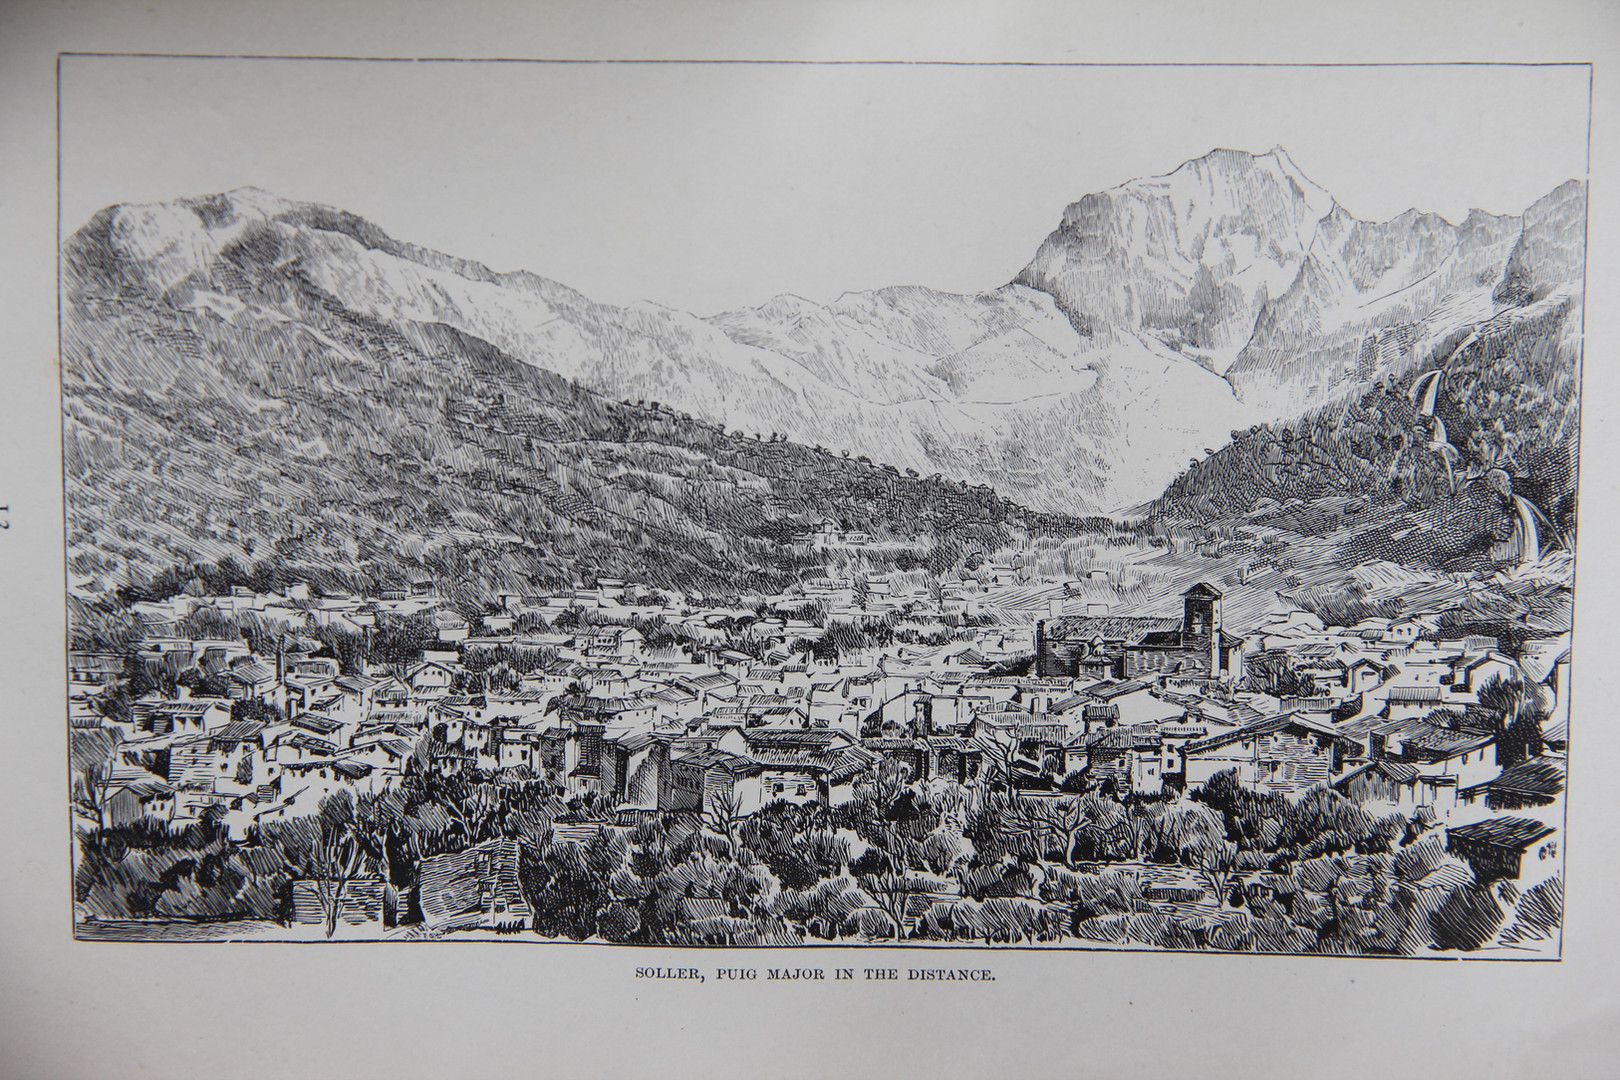 """Sóller with the silhouette of the Puig Major in the background. Print included in CW Wood's book """"Letters from Majorca"""" (1888)."""